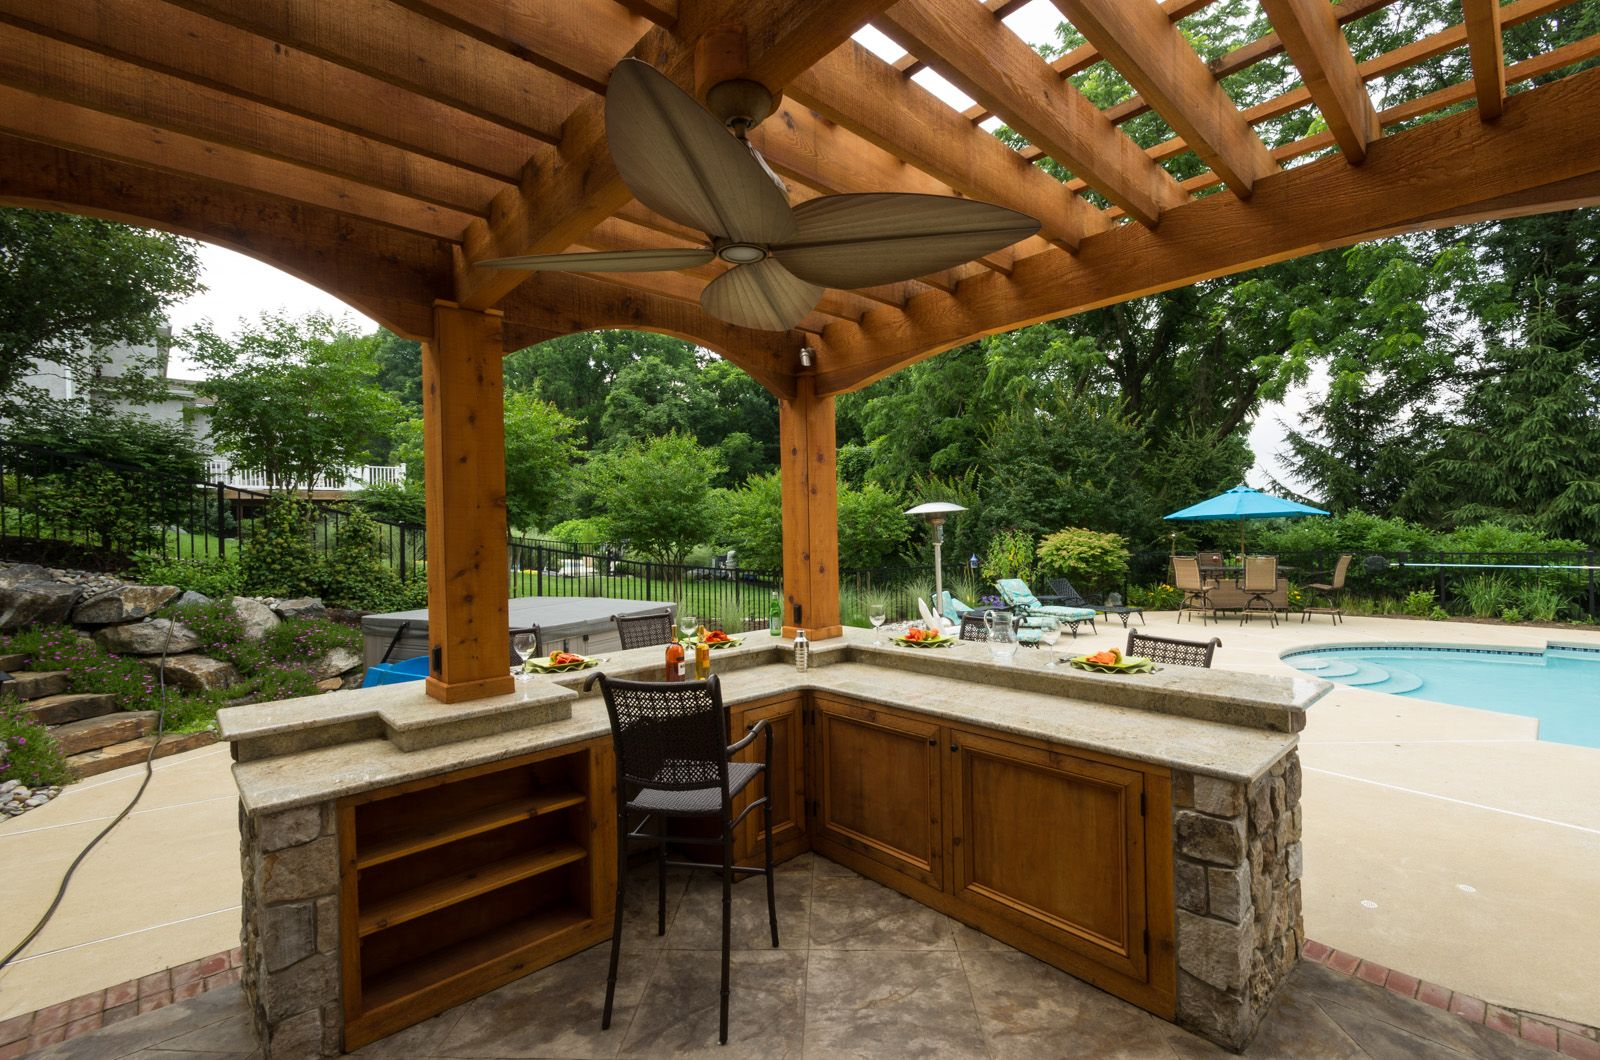 Custom outdoor living space designers Delaware | Outdoor ... on Disabatino Outdoor Living id=53093